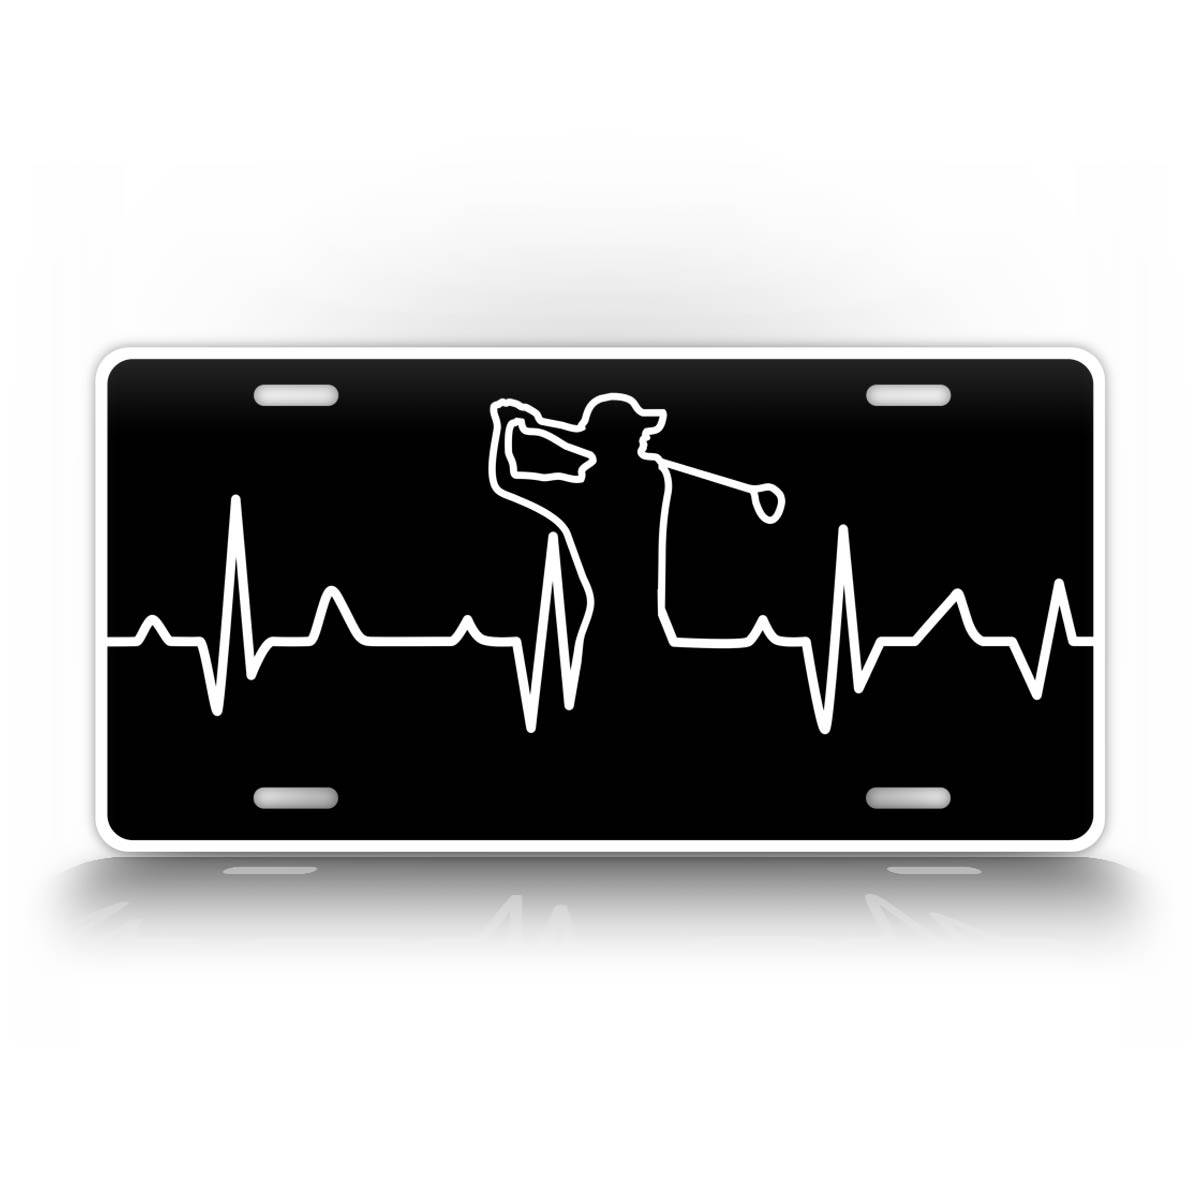 Golfing Heartbeat License Plate